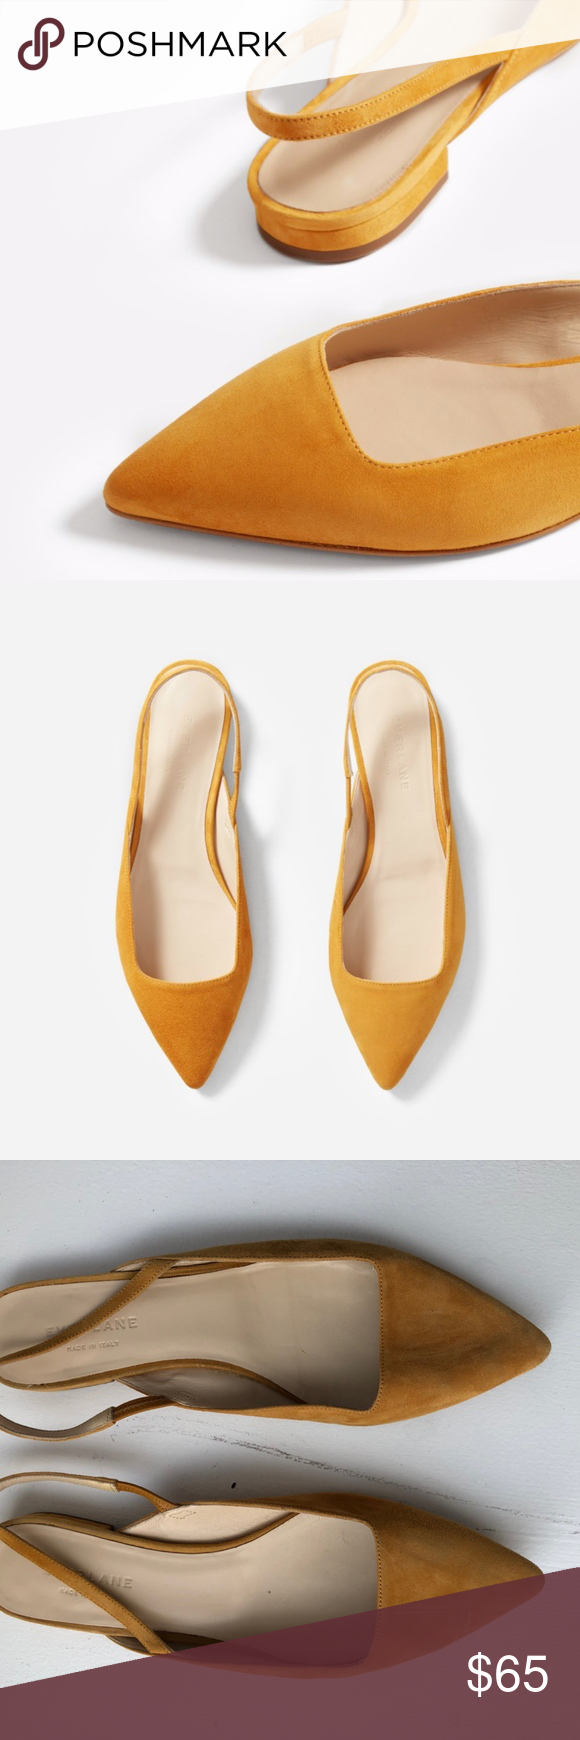 e78b2b517 Everlane Women's Editor Slingback Everlane Women's Editor Slingback in Mustard  Suede. Worn once. Perfect condition. Size 9. Everlane Shoes Flats & Loafers